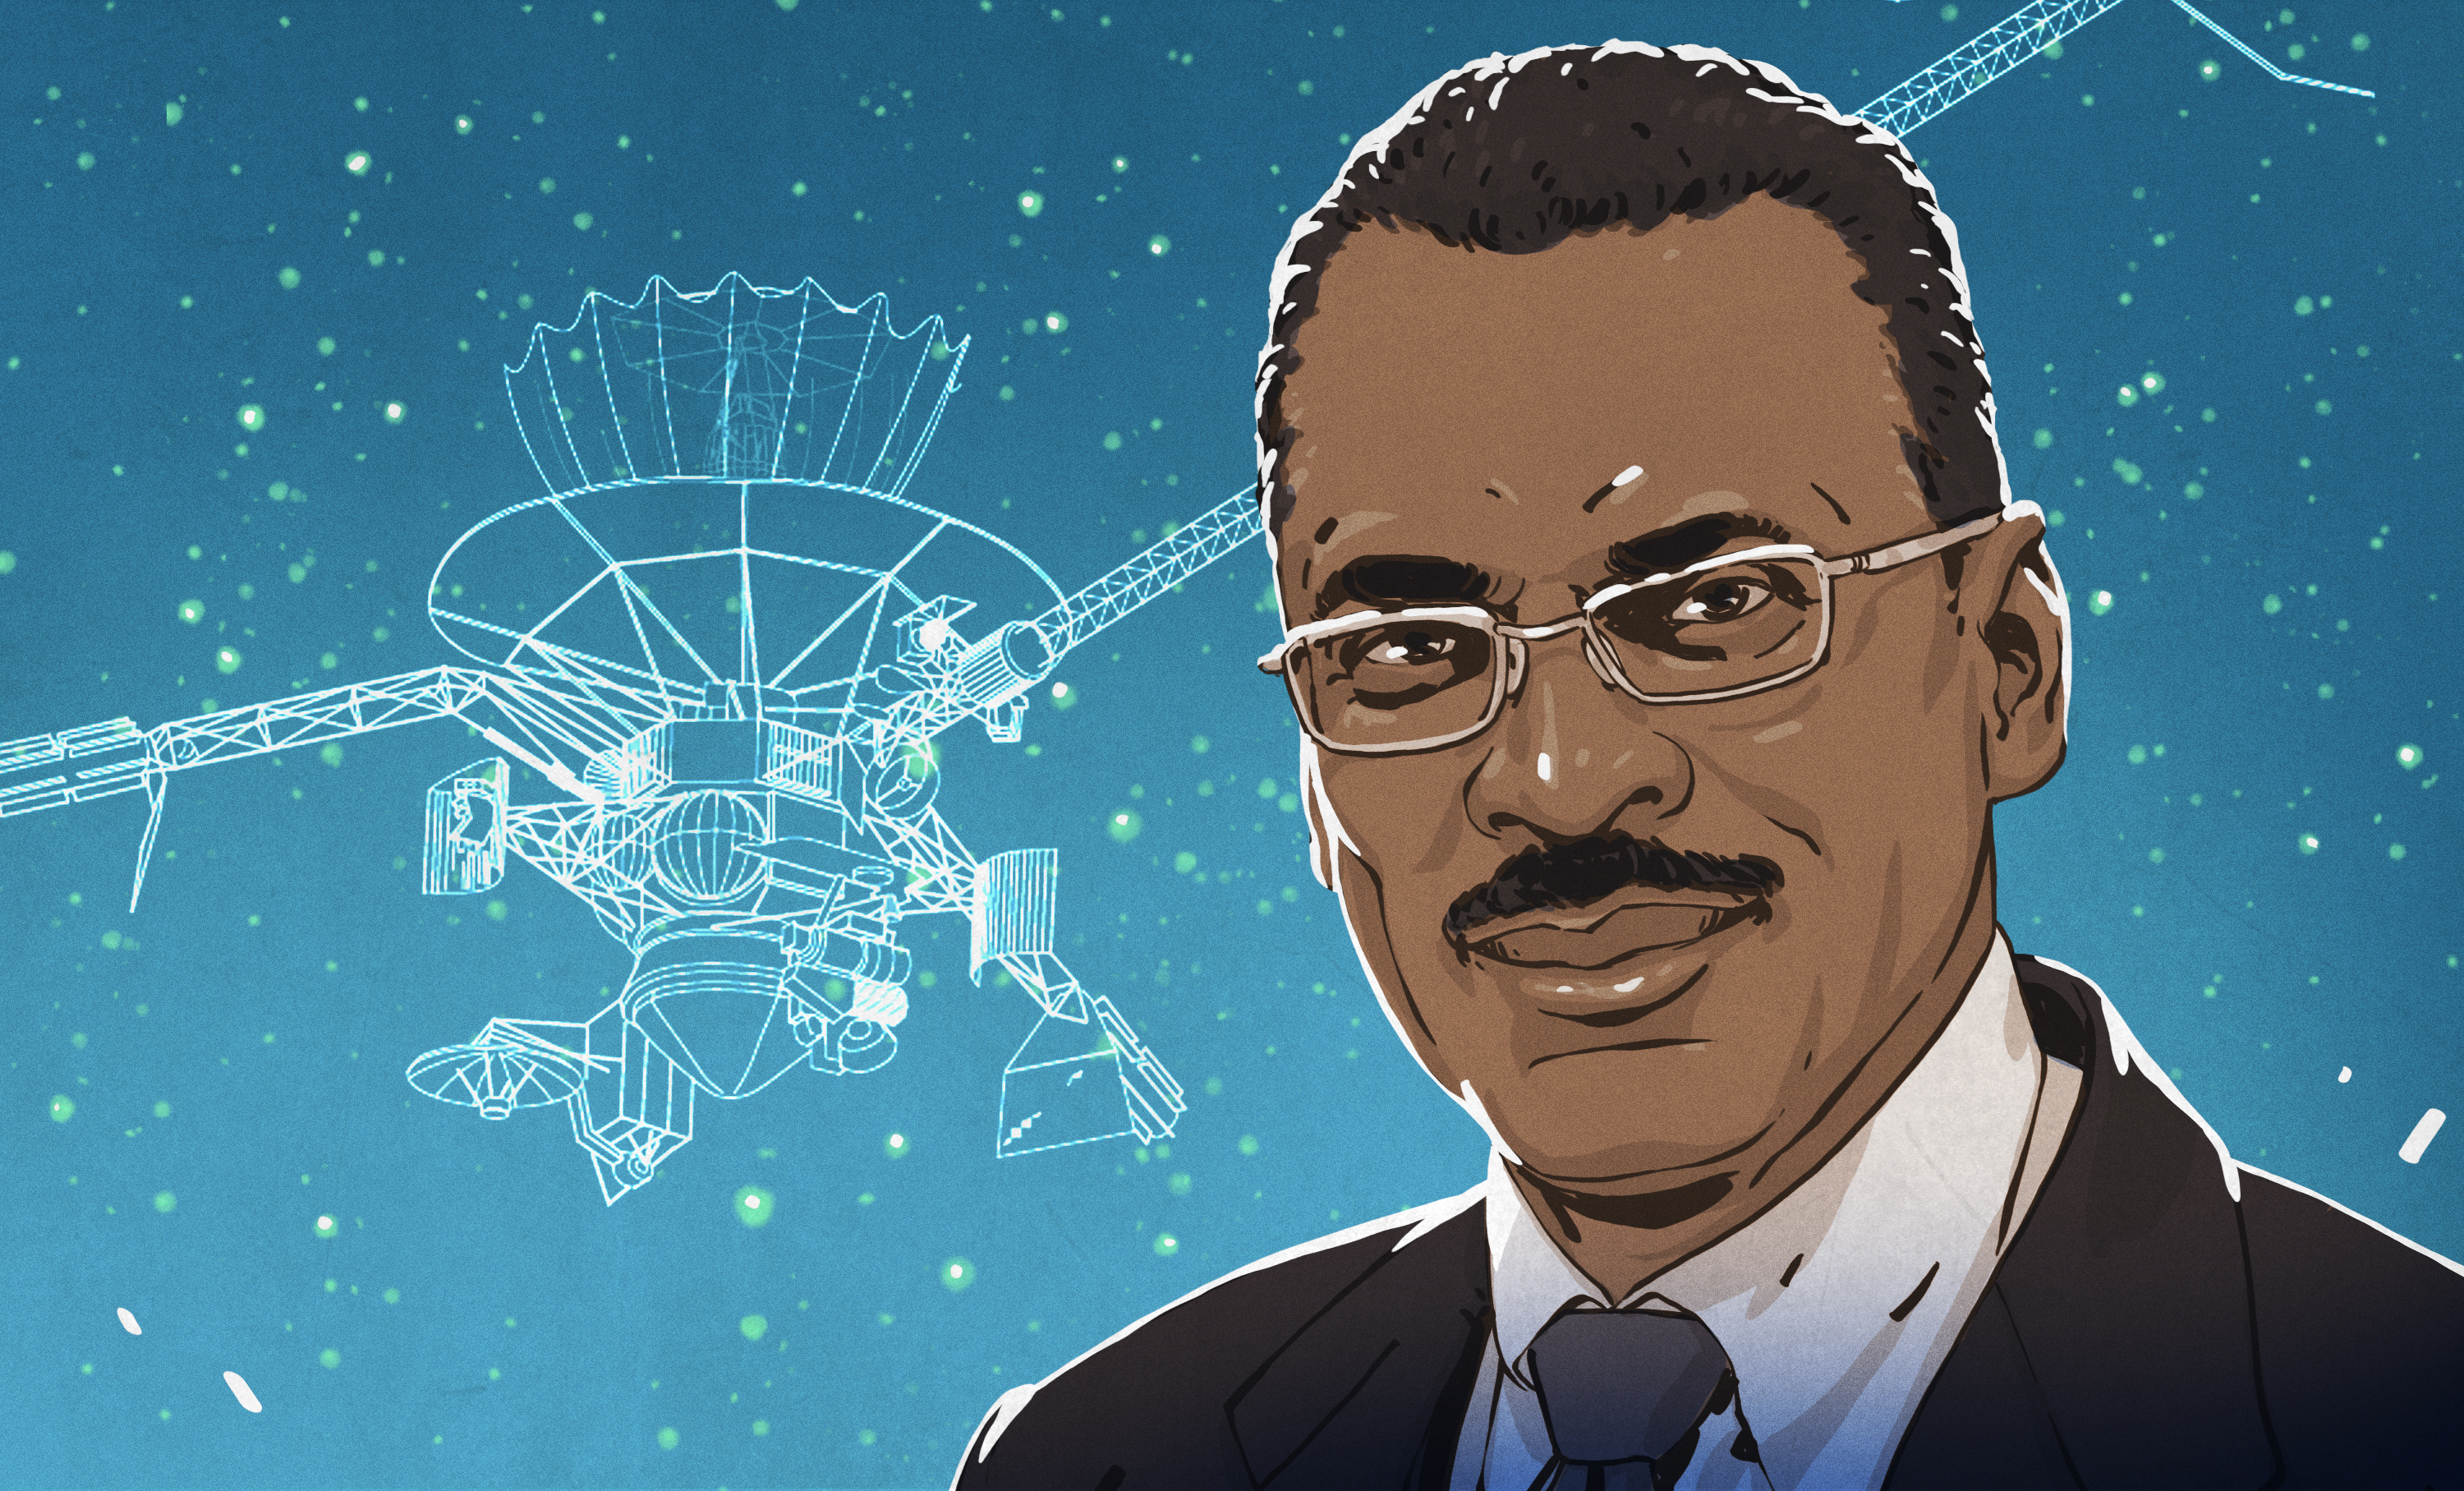 Lonnie Johnson Prolific Engineer And Hero To Millions Of Kids Even If They Don T Know It Hackaday